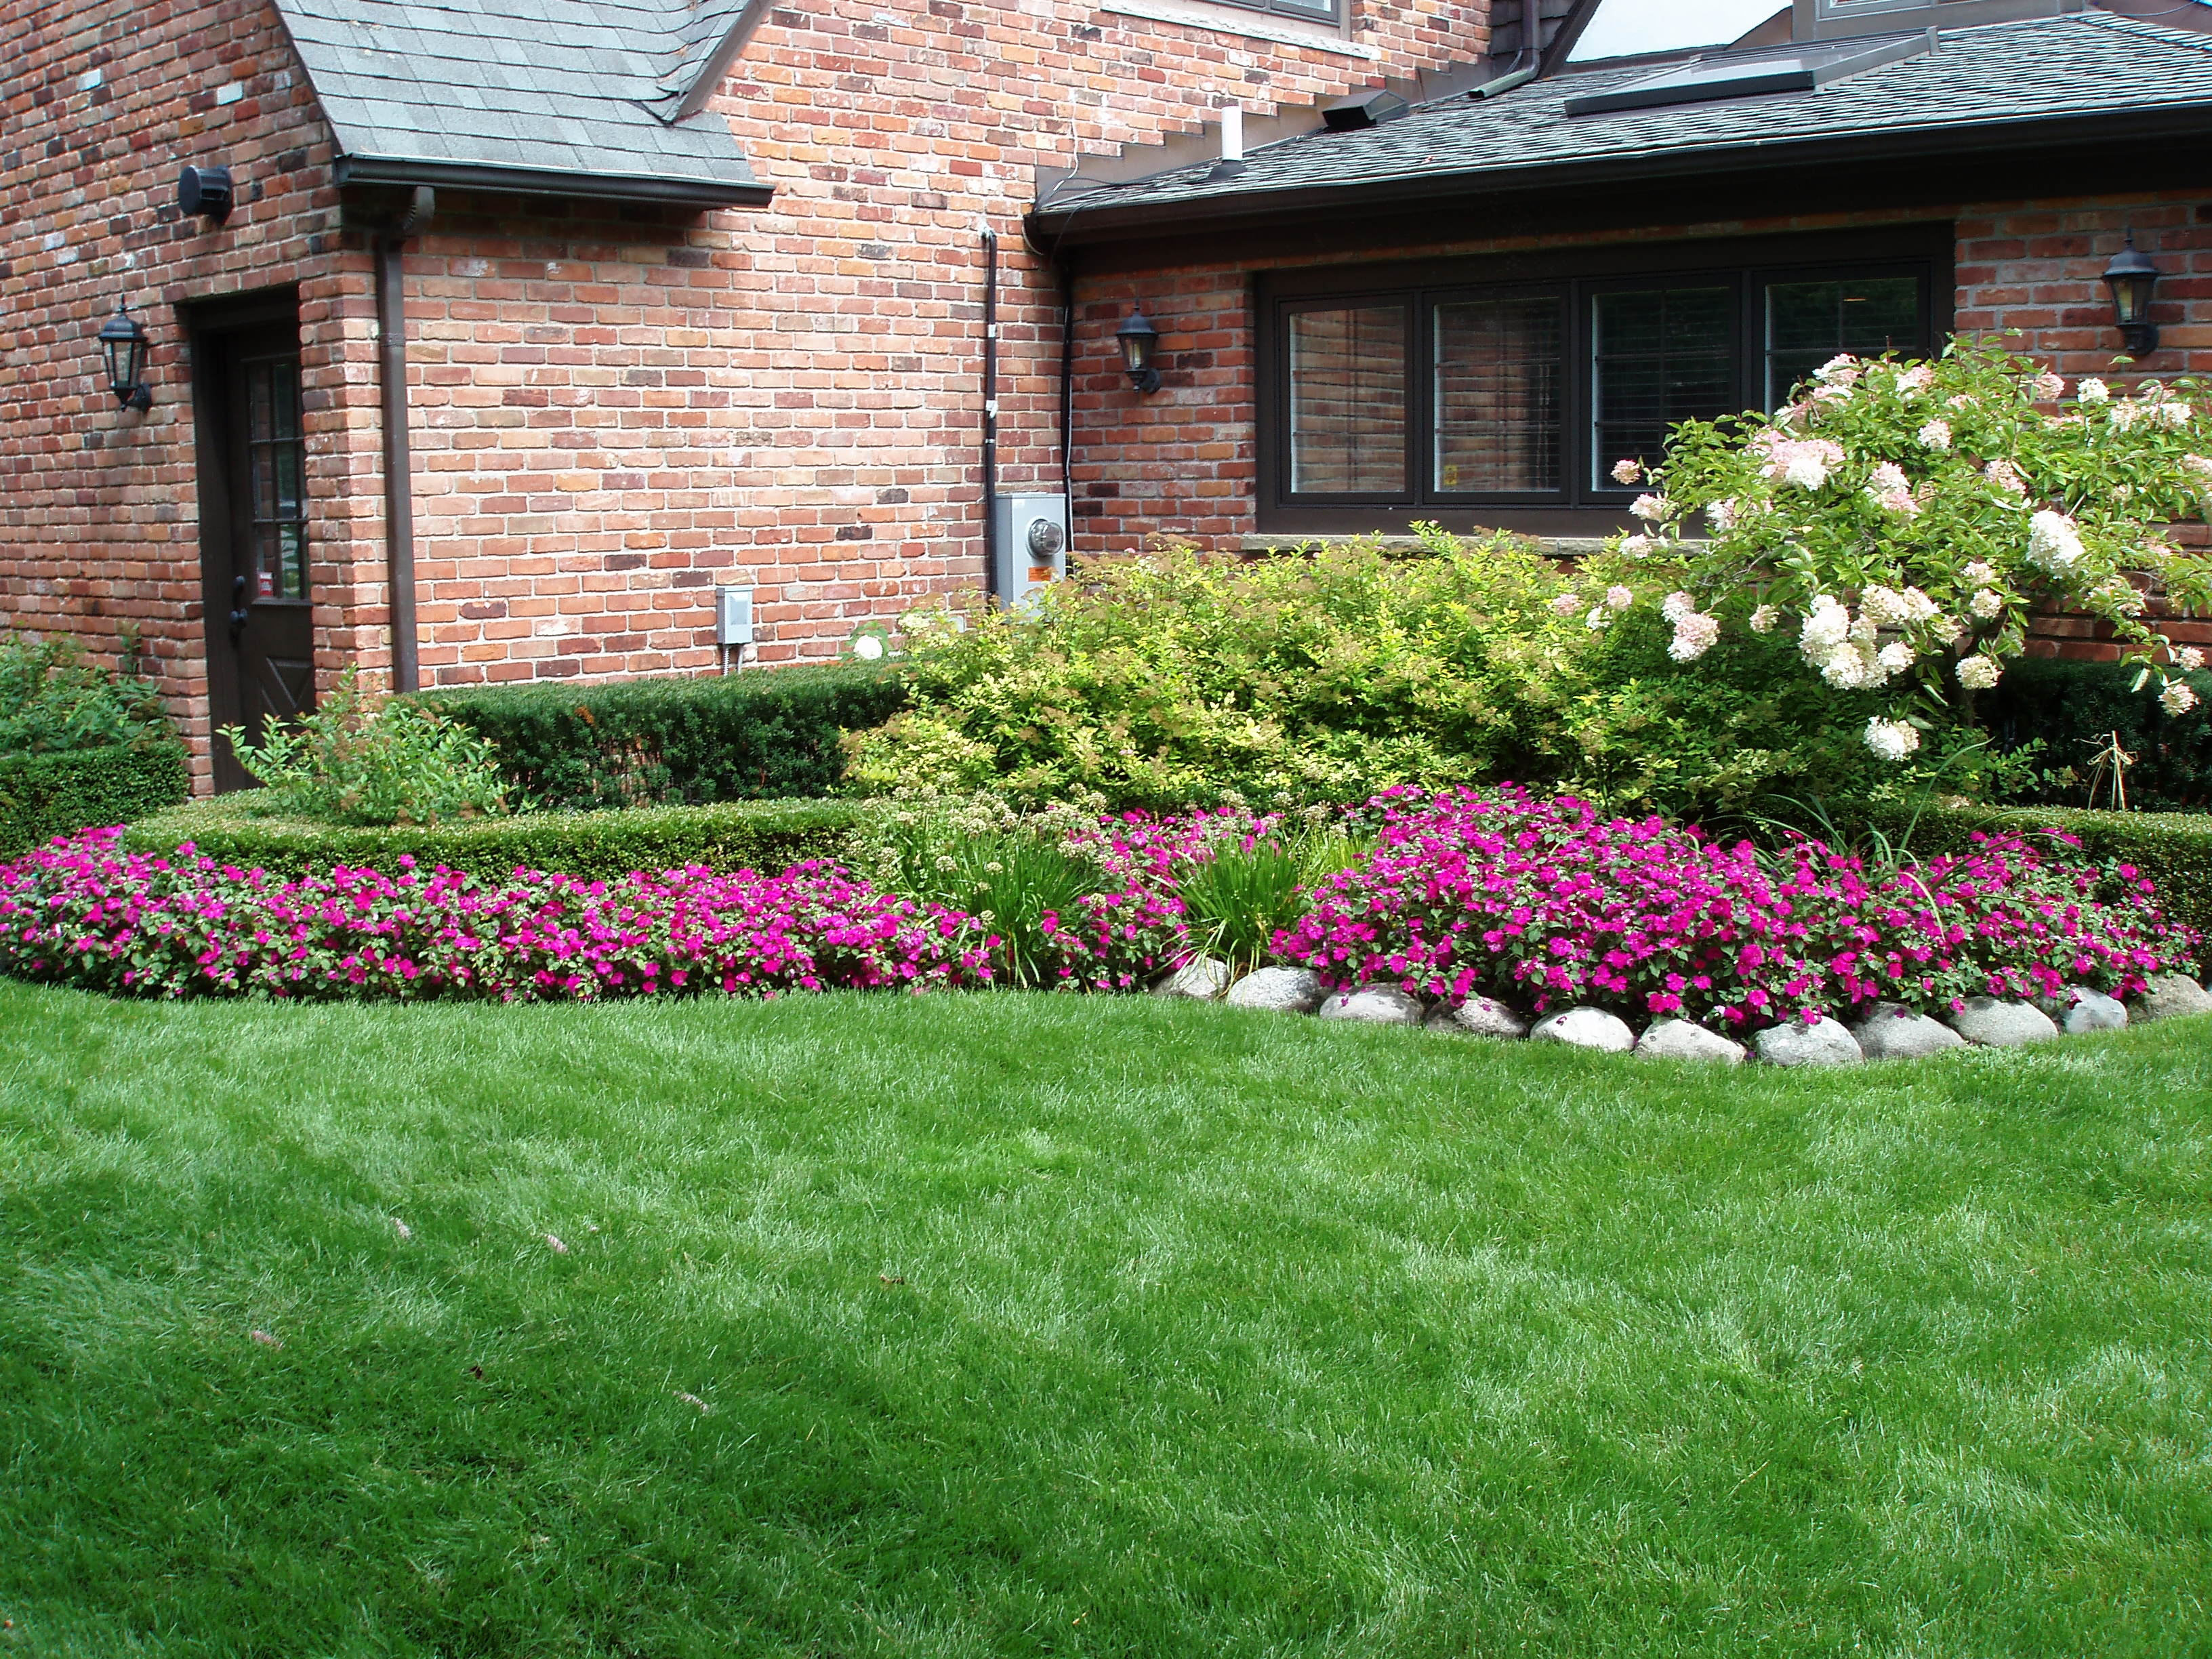 Perennials total lawn care inc full lawn maintenance for Home front garden ideas